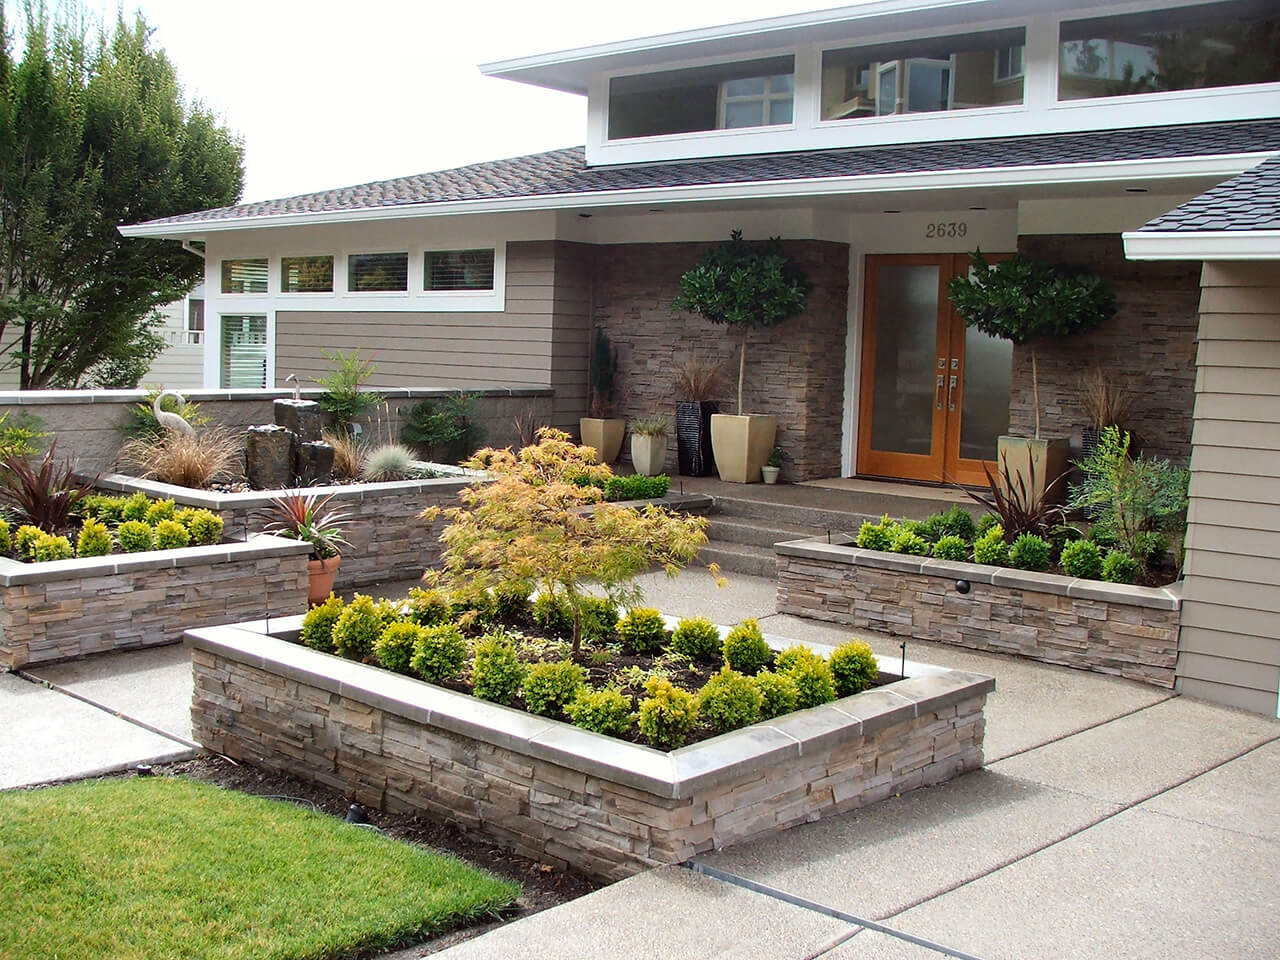 20 brilliant front garden landscaping ideas style motivation for Designing your yard landscape